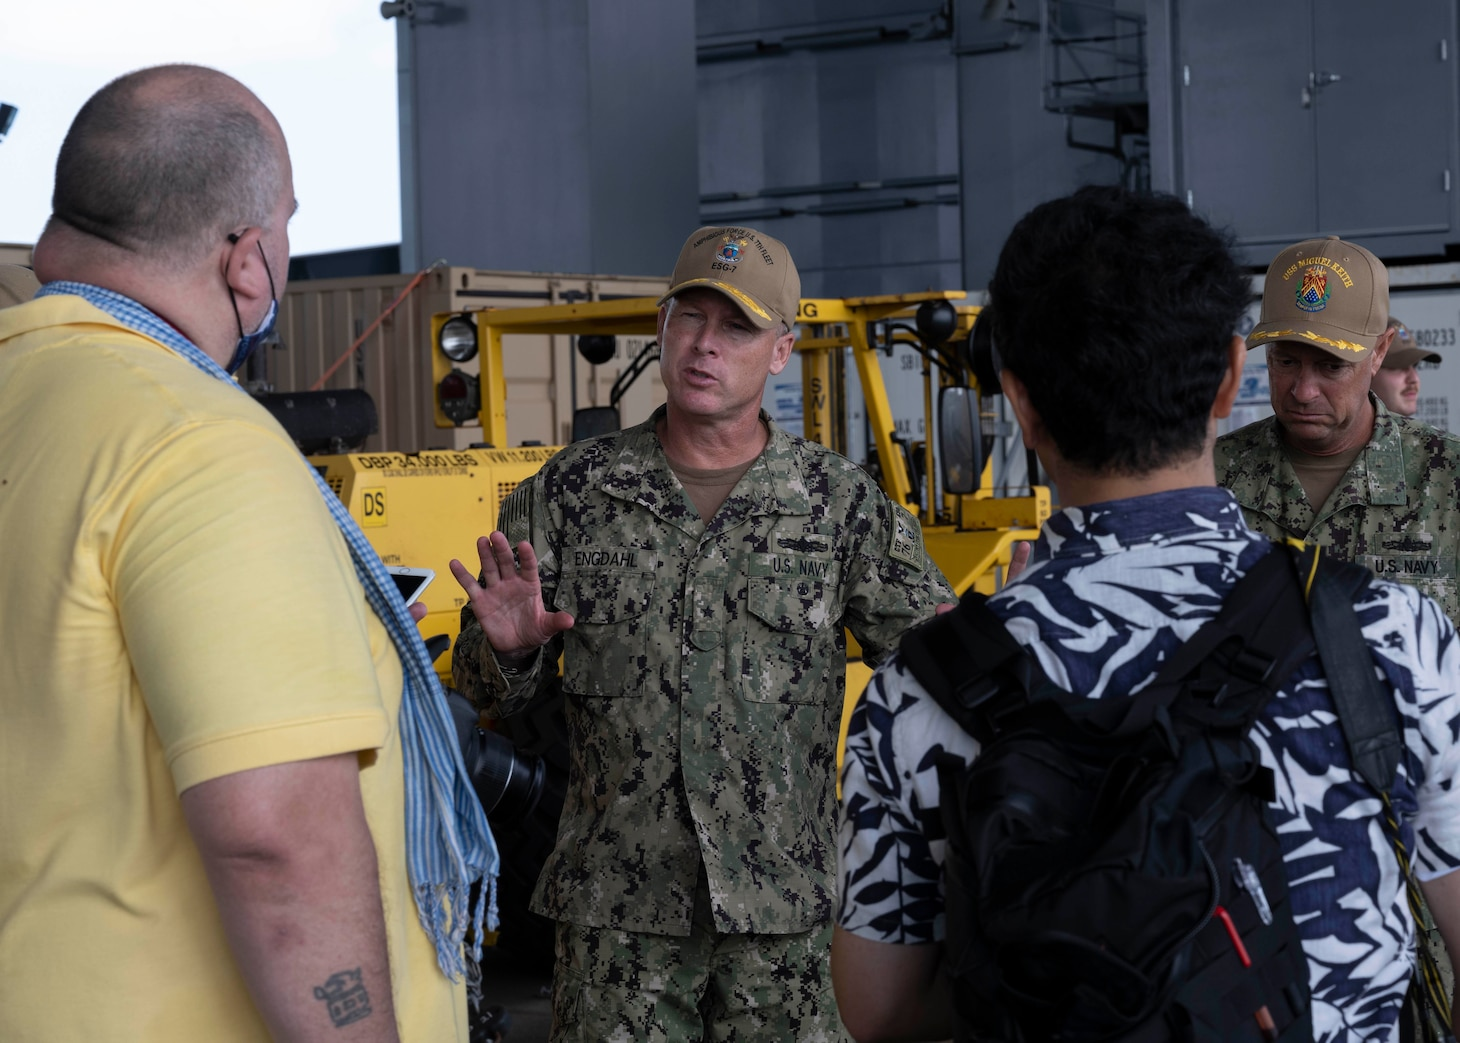 WHITE BEACH, Japan (Oct. 6, 2021) Rear Adm. Chris Engdahl,commander, Expeditionary Strike Group 7, speaks with local media aboard Lewis B. Puller-class expeditionary staging base USS Miguel Keith (ESB 5) to local media  Oct. 6, 2021. Miguel Keith, assigned to Amphibious Squadron Eleven, is operating in the U.S. 7th Fleet area of responsibility to enhance interoperability with allies and partners and serve as a ready response force to defend peace and stability in the Indo-Pacific region. (U.S. Navy photo by Mass Communication Specialist 2nd Class Jessica Ann Hattell)